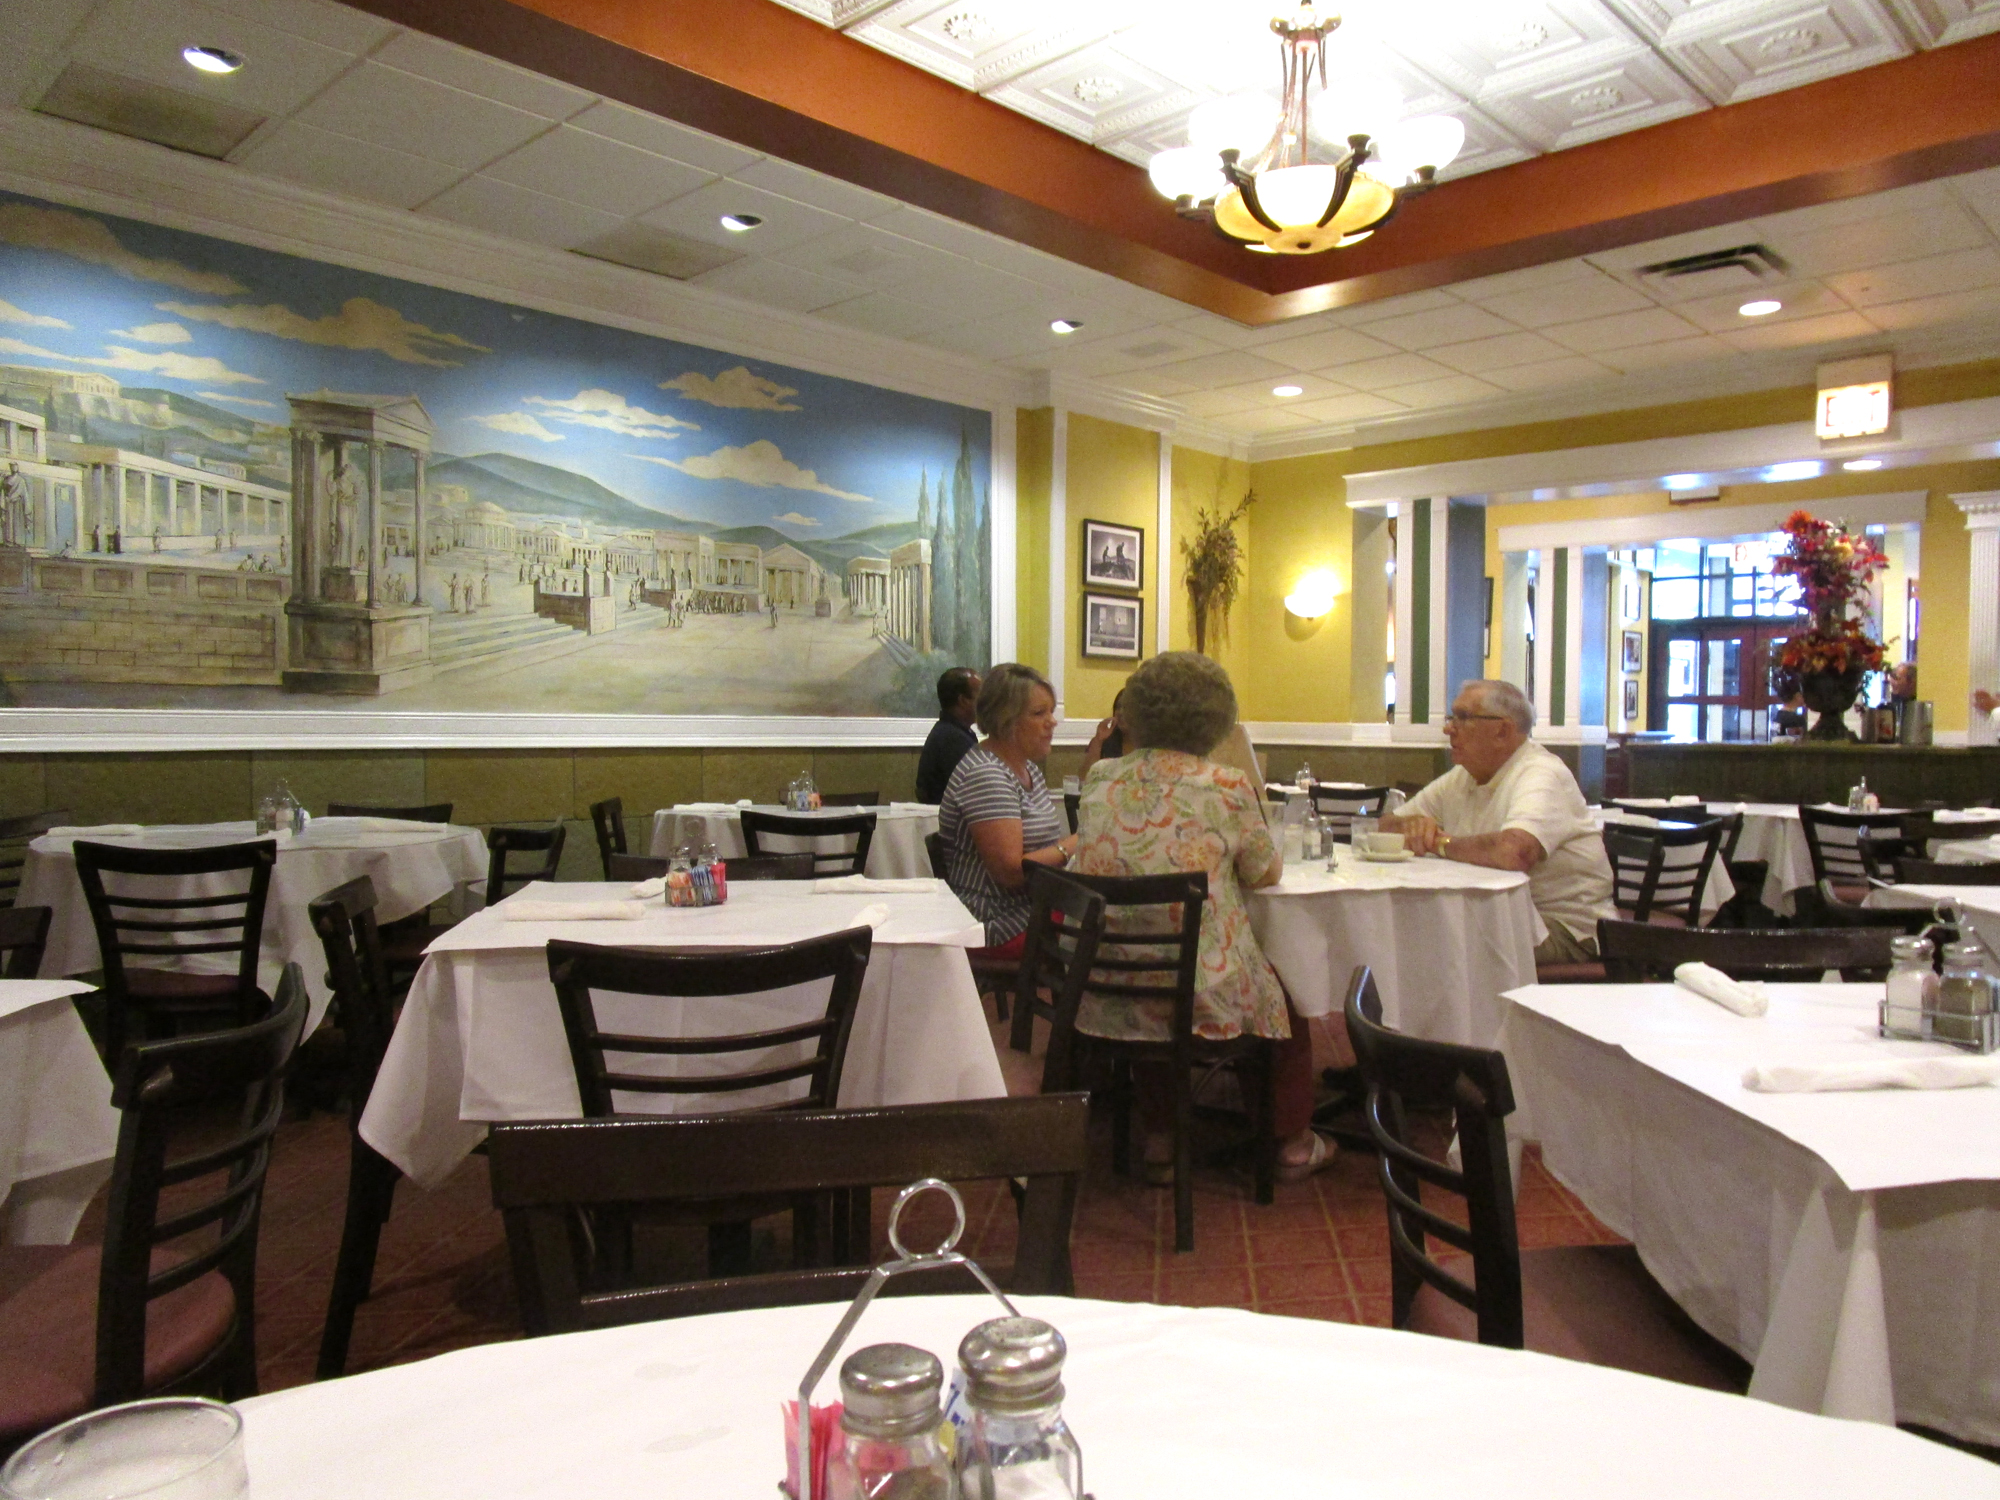 FOODITOR RADIO: THE PARTHENON FALLS, BUT CHICAGO MARCHES ON